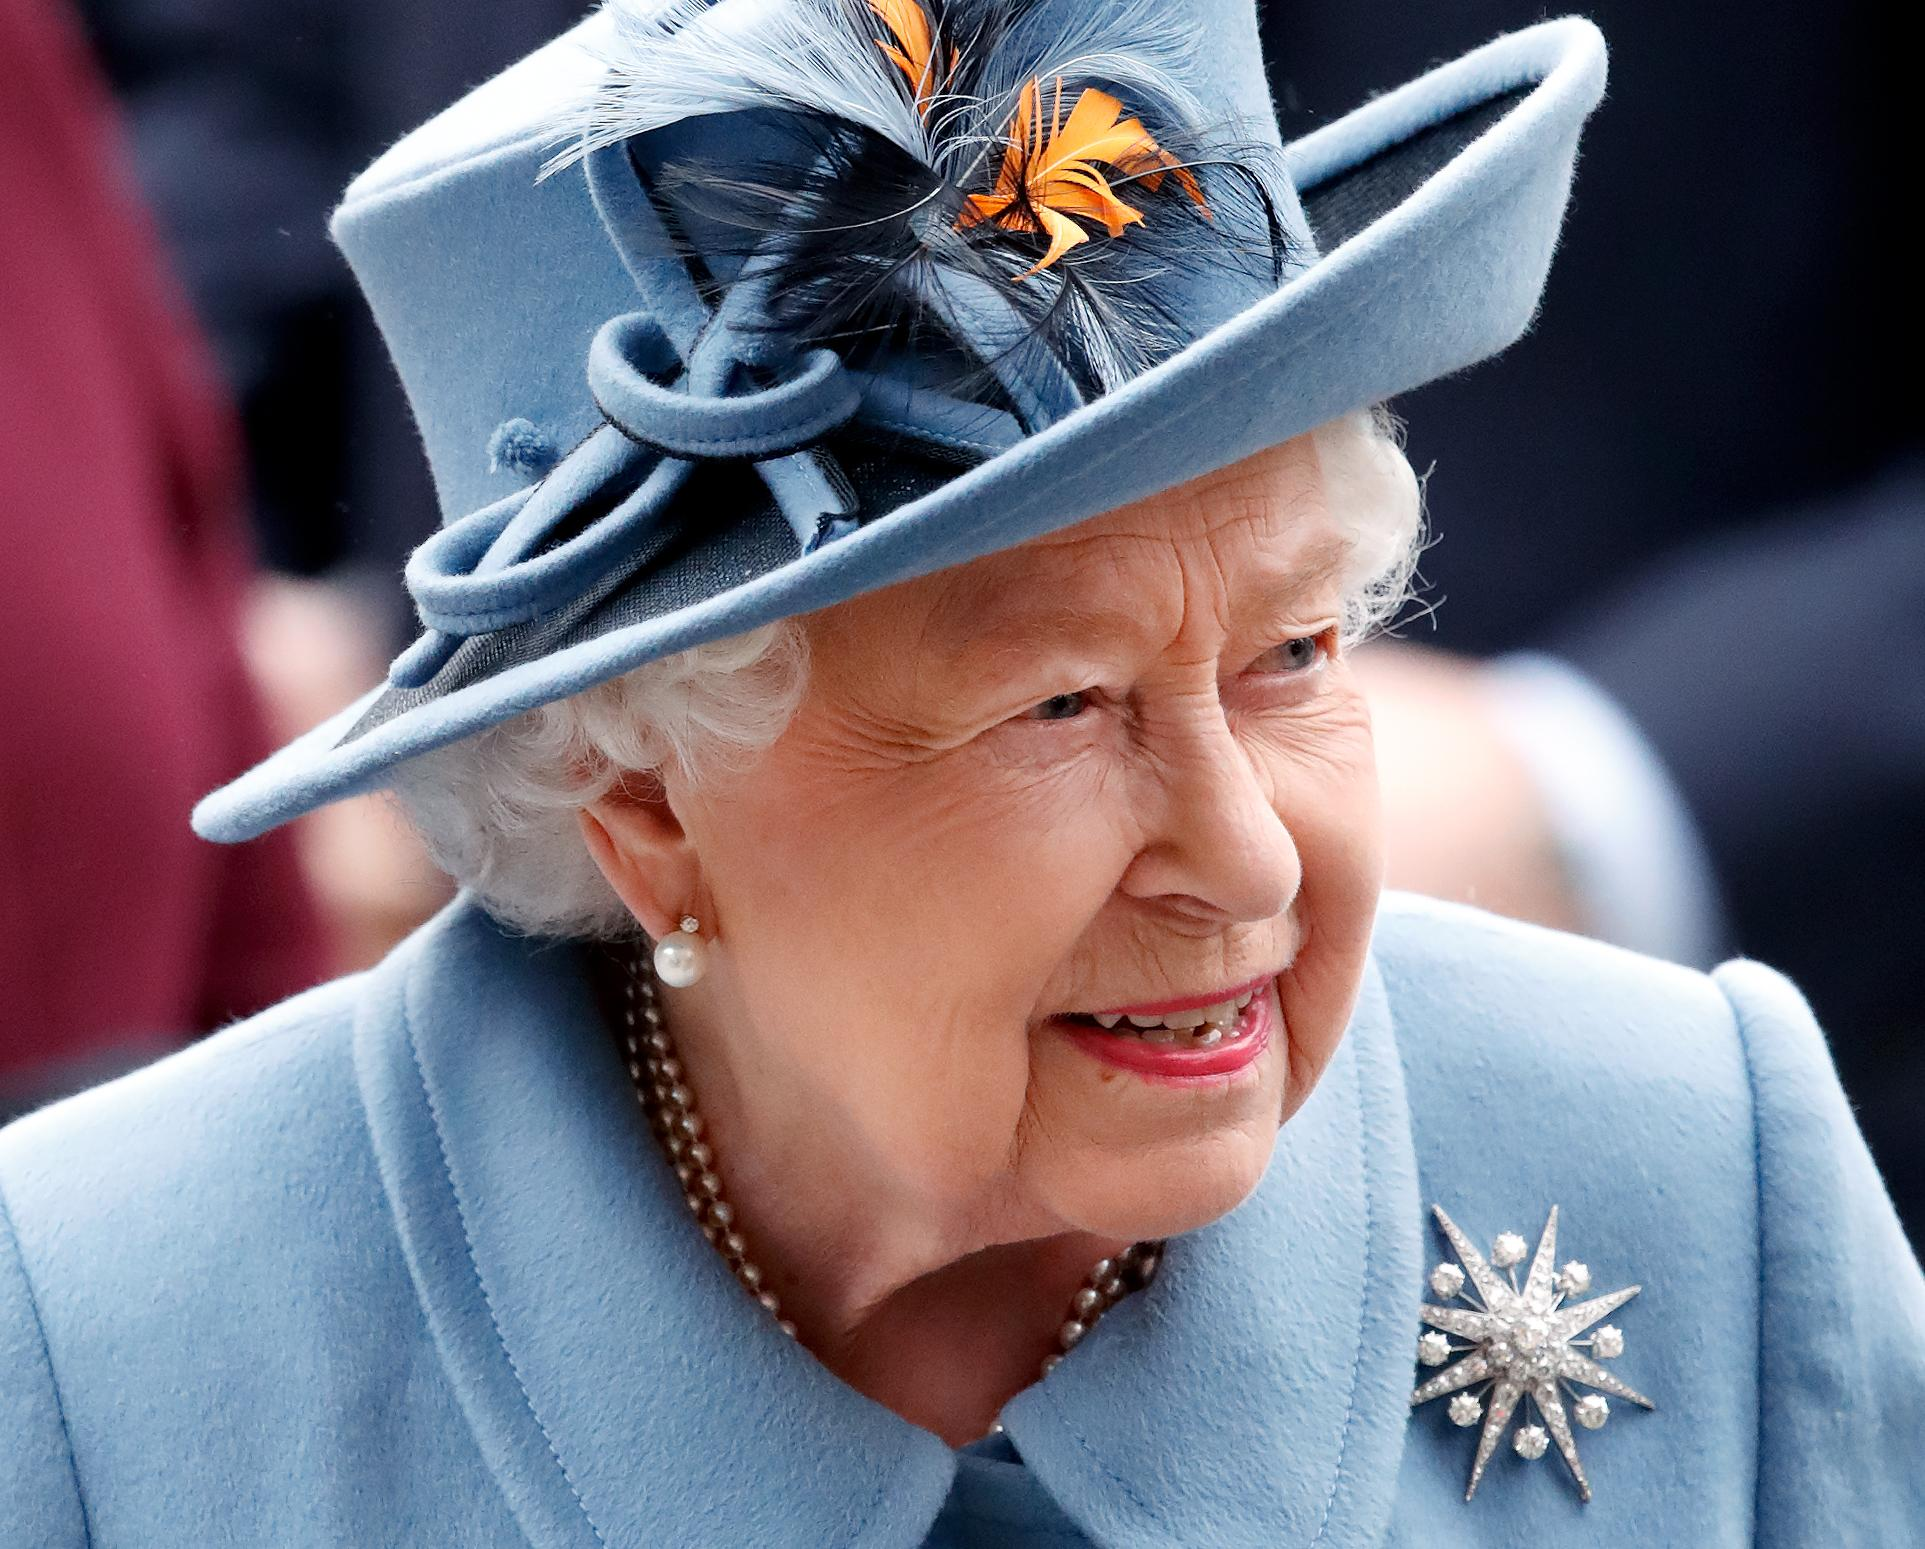 Queen Elizabeth II speaks out on the coronavirus in rare special address: 'Better days will return'